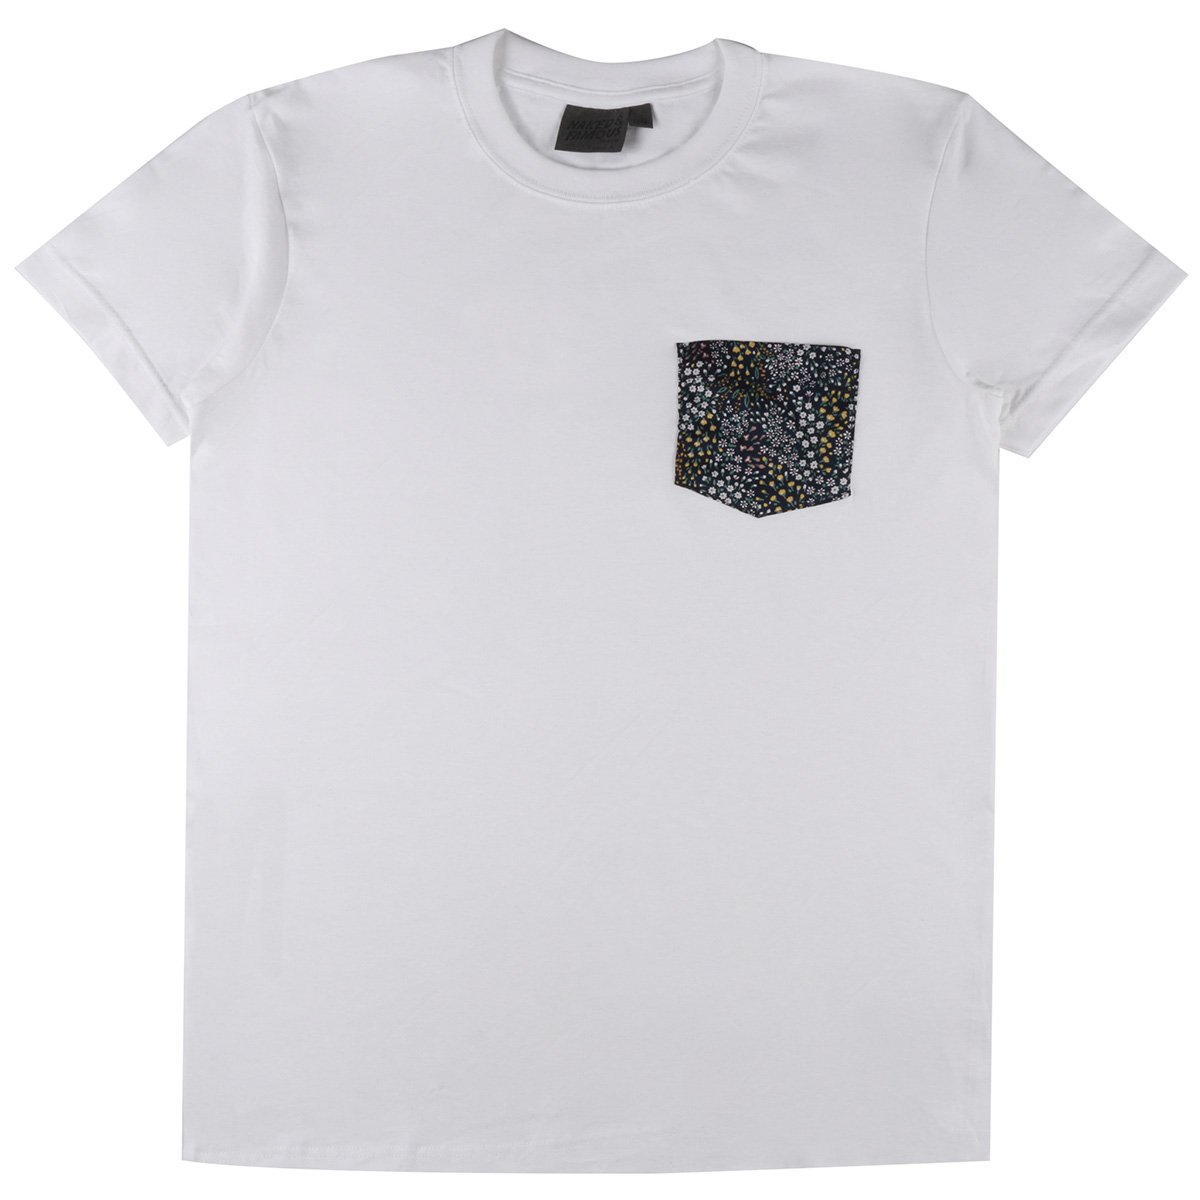 WHITE + aLLOVER FLOWERS - Pocket Tee